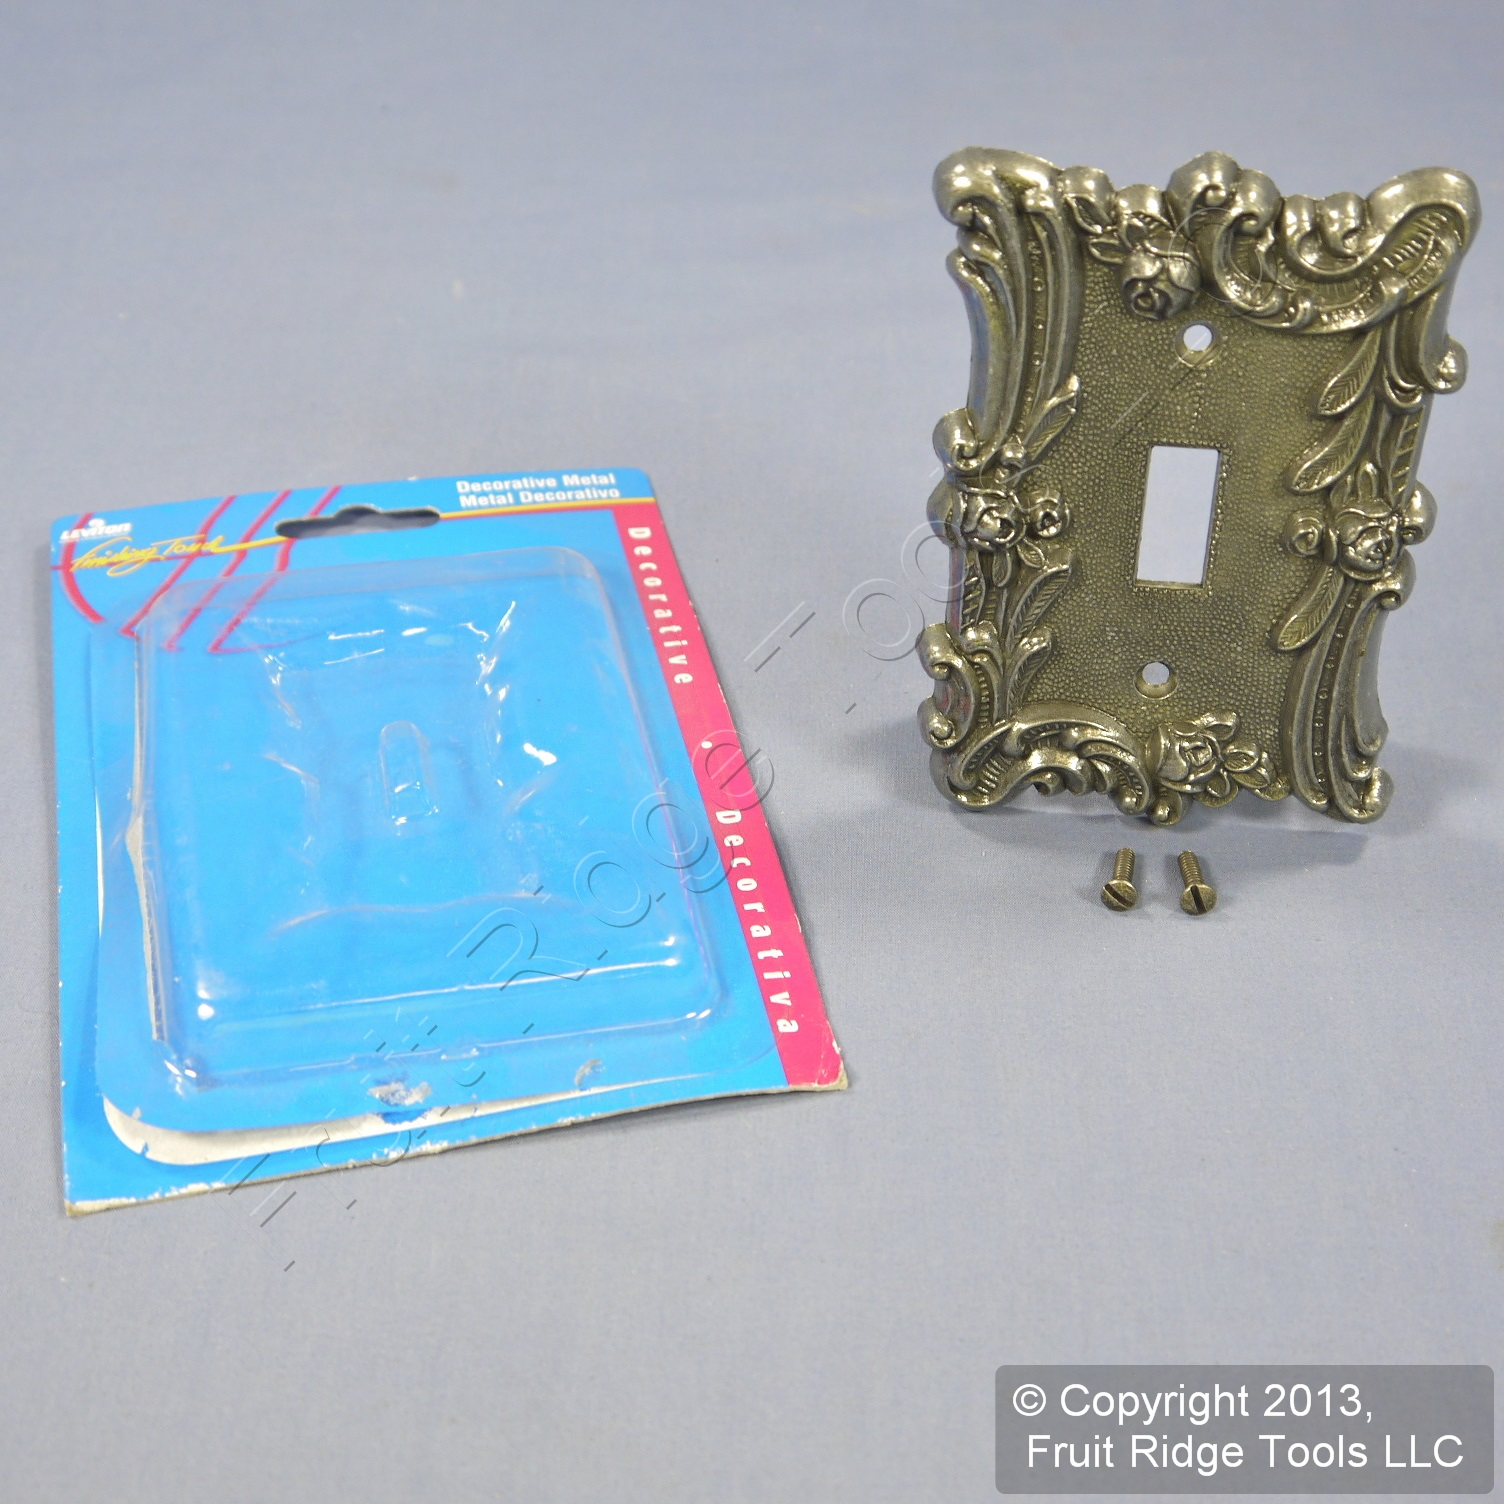 Leviton Antique Silver Textured Metal Switch 1 Gang Cover Wallplate 89601 Asp 78477214893 Ebay